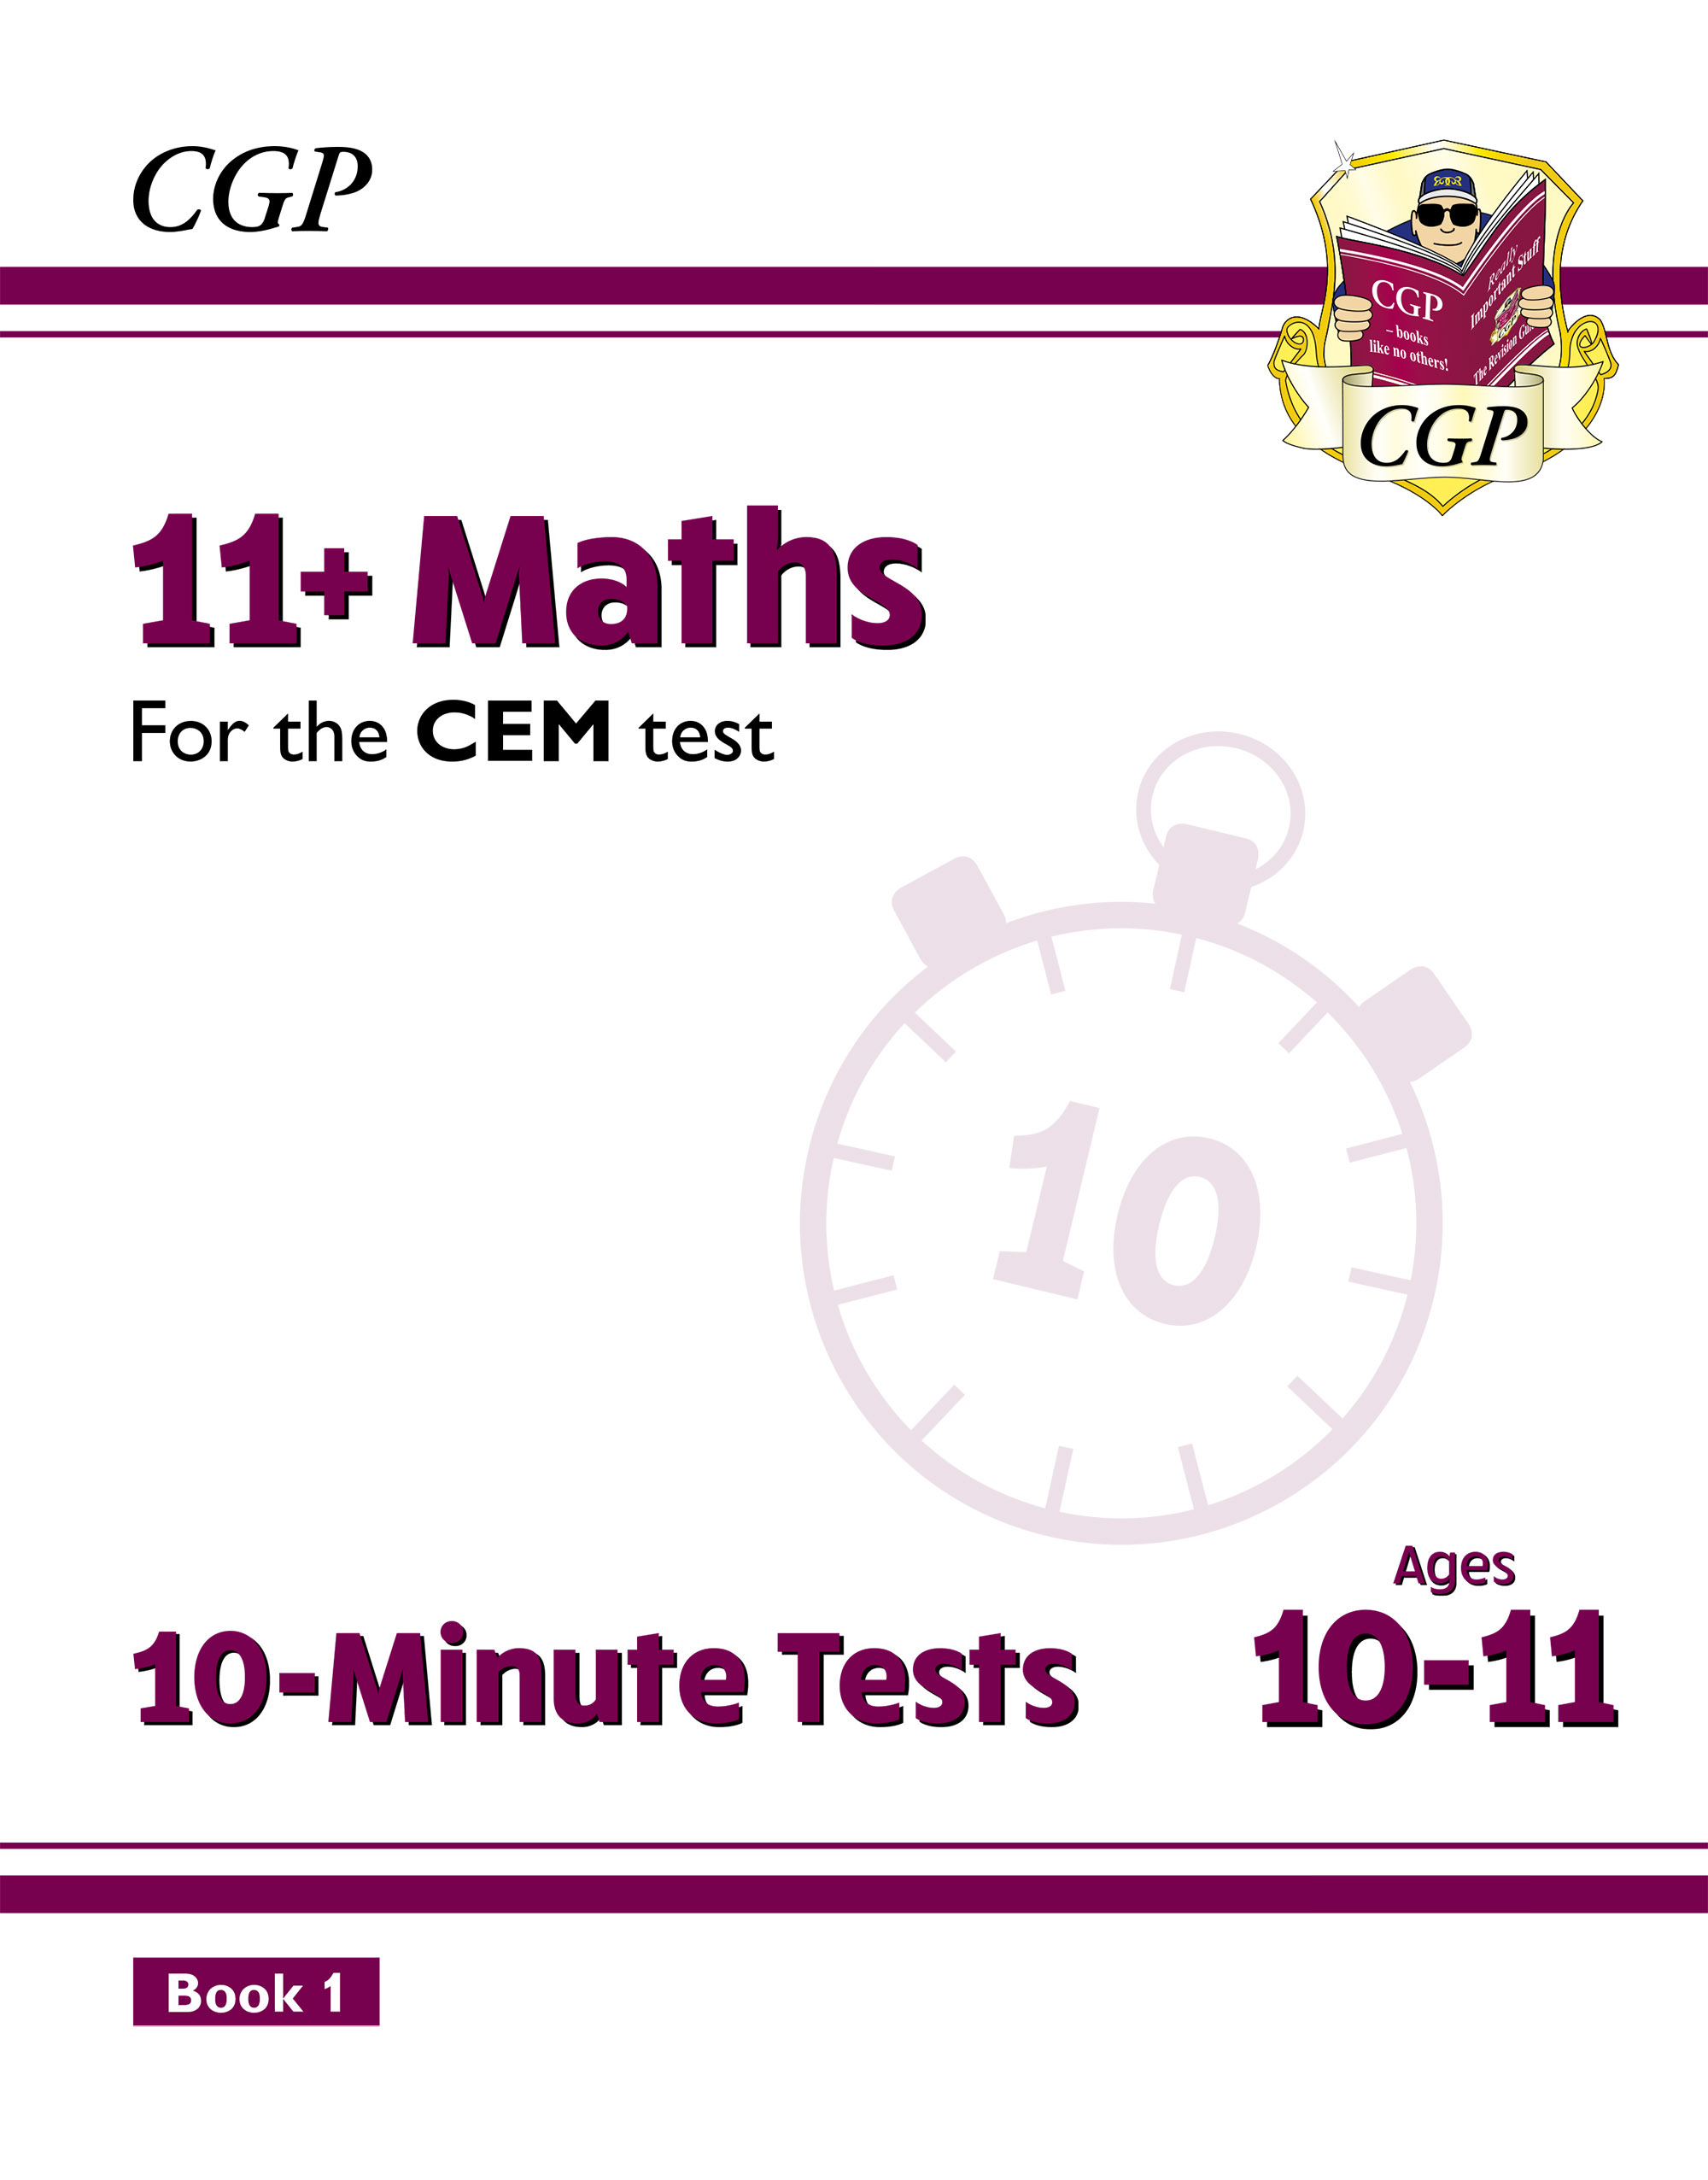 M6XPDE2DK - New 11+ CEM 10-Minute Tests: Maths - Ages 10-11 Book 1 (with Online Edition)